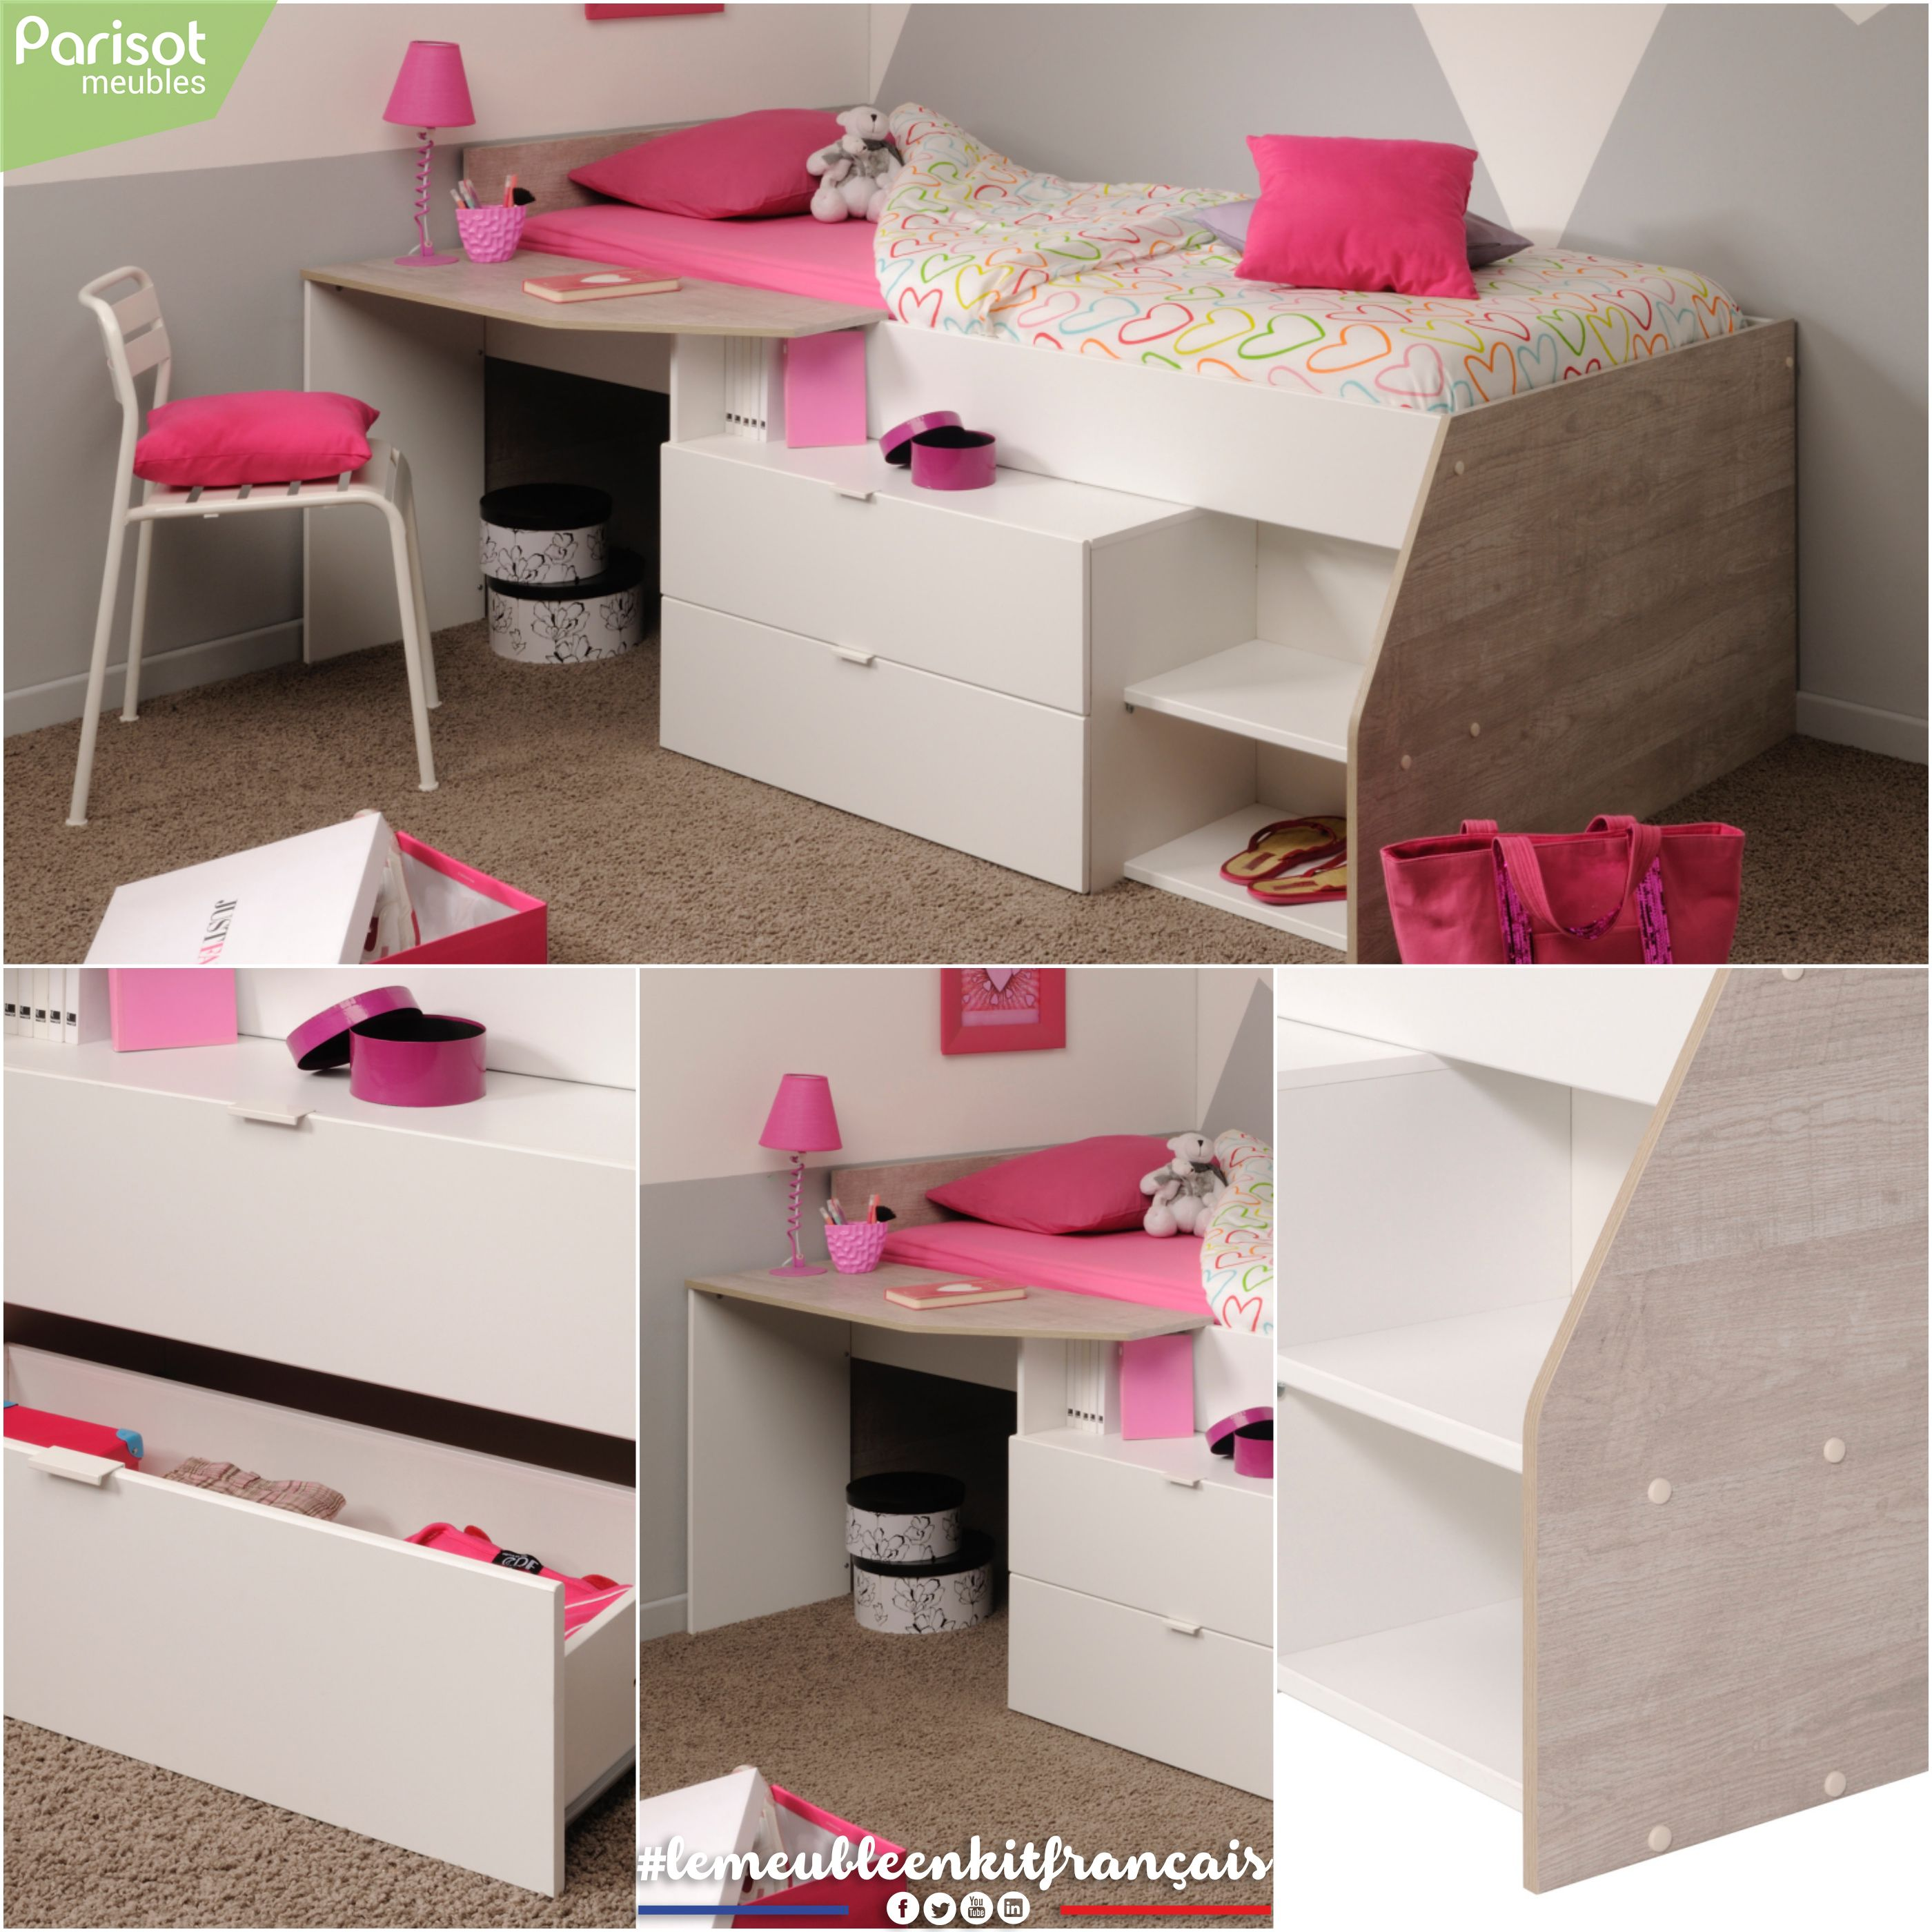 Milky By Parisot Meubles An All In One Space Saving Bedding Solution This Bed Includes A Desk Bedside Table Space Two Drawers Wi Mobilier De Salon Interieur